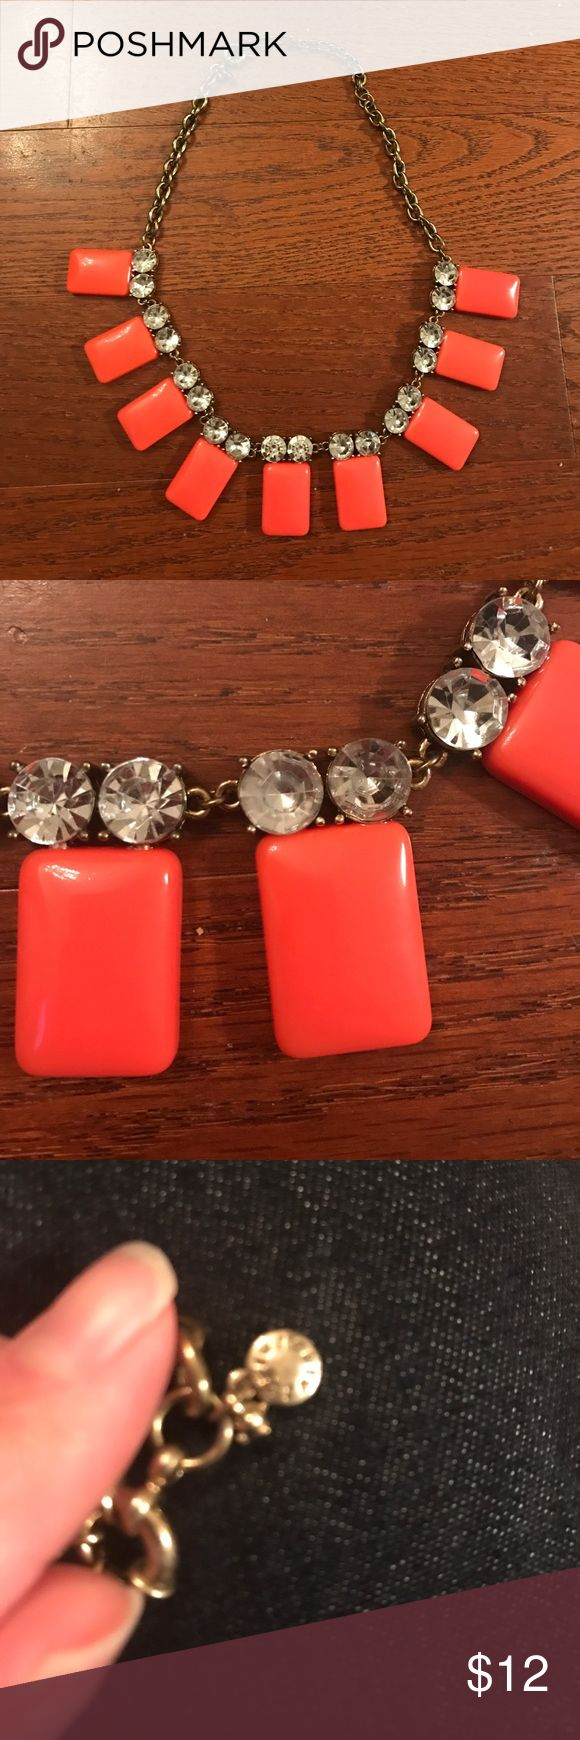 J Crew Factory Necklace J Crew Factory Orange Tile Necklace.  Excellent used condition and worn only a couple of times. J. Crew Factory Jewelry Necklaces